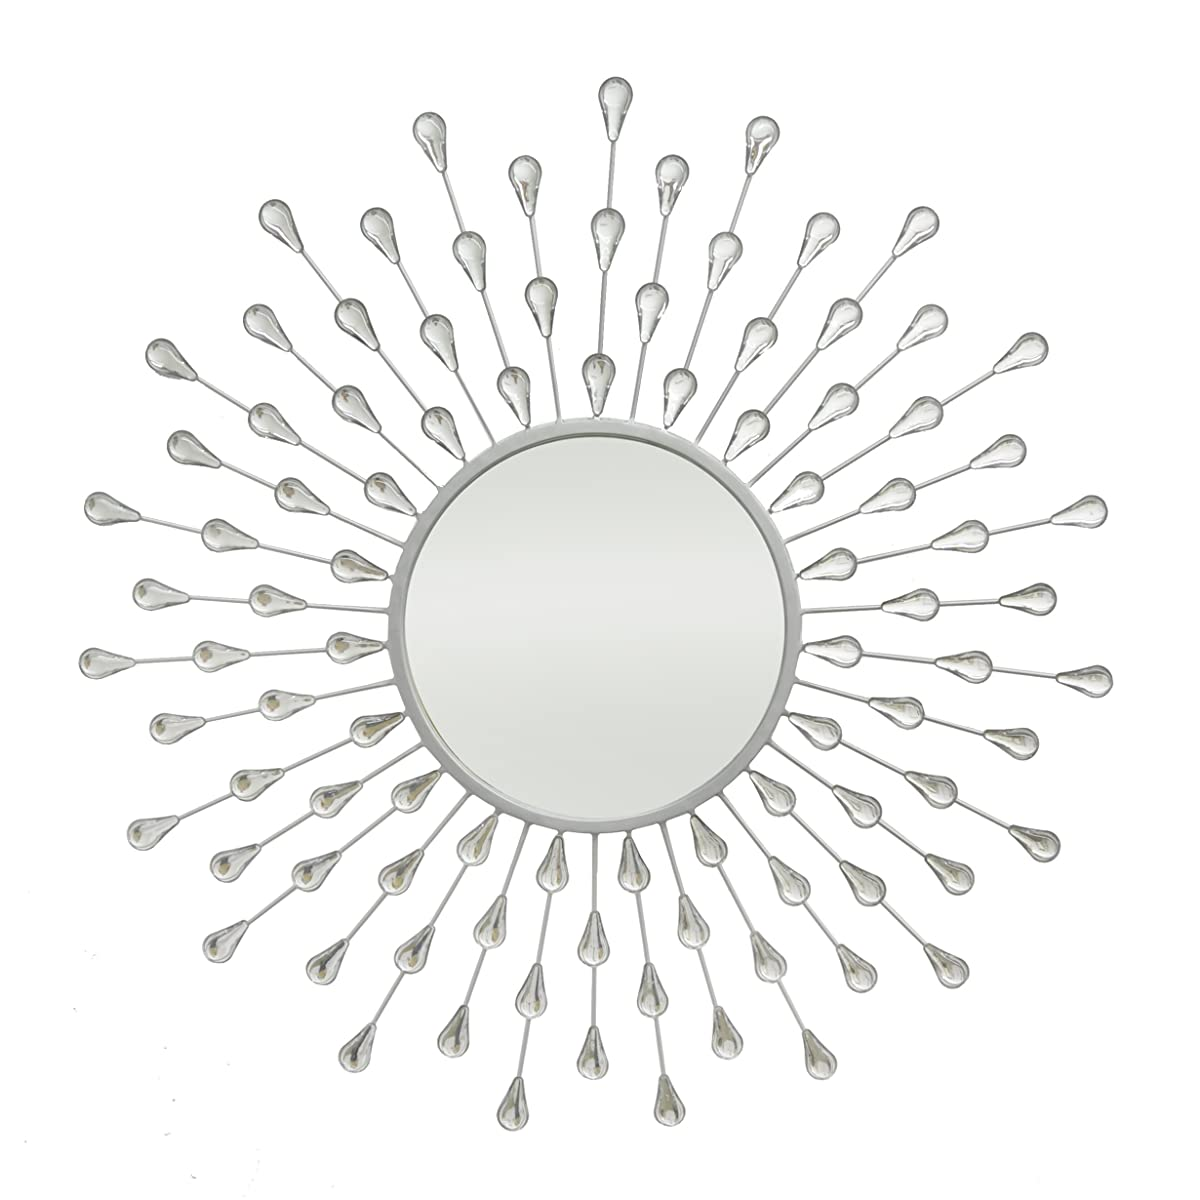 Three Hands Corporation 17560 Starburst Jeweled Mirror, Silver